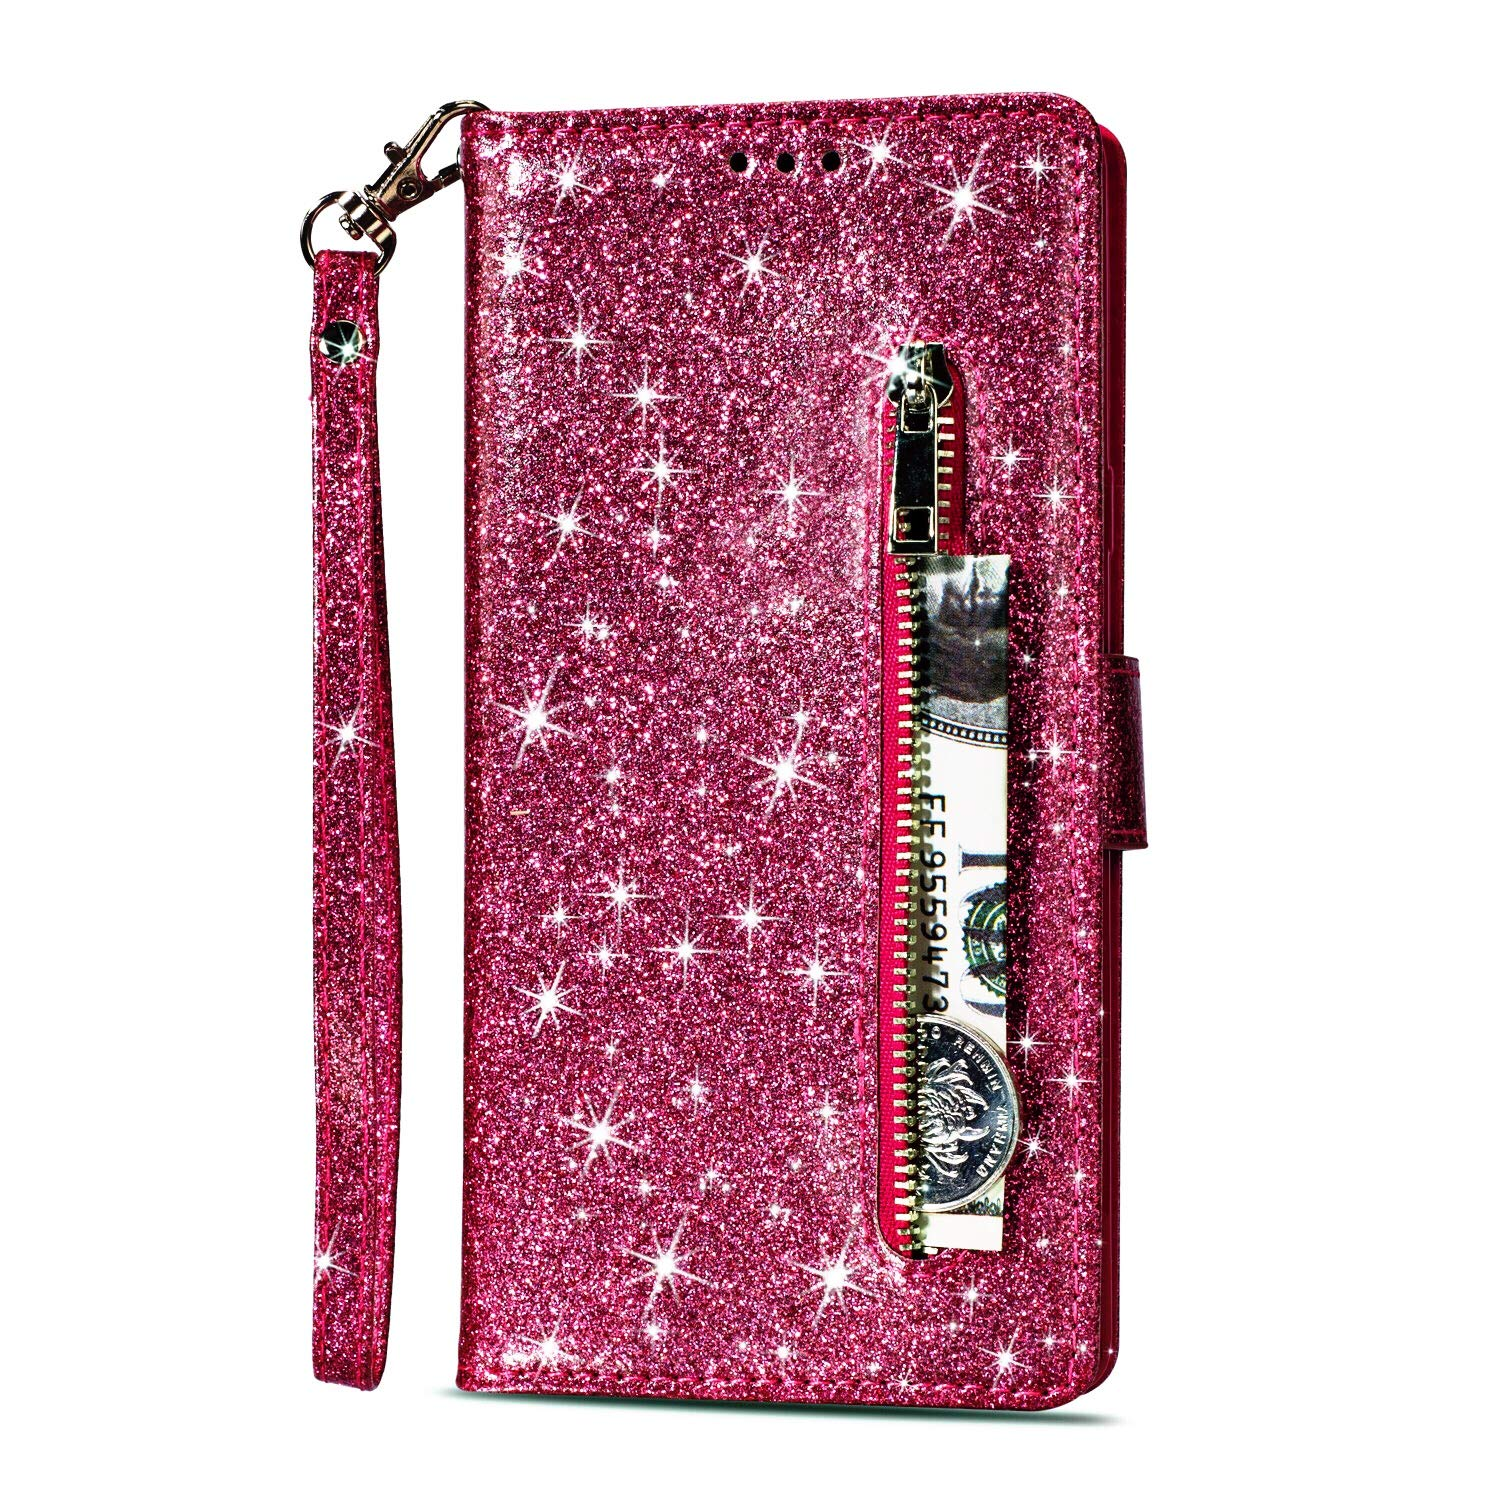 Zipper Wallet Case for Samsung Galaxy J3 2018, Gostyle Samsung Galaxy J3 2018 Bling Glitter Leather Case with Card Holder, Flip Magnetic Closure Stand Cover with Cash Pocket and Hand Strap-Purple